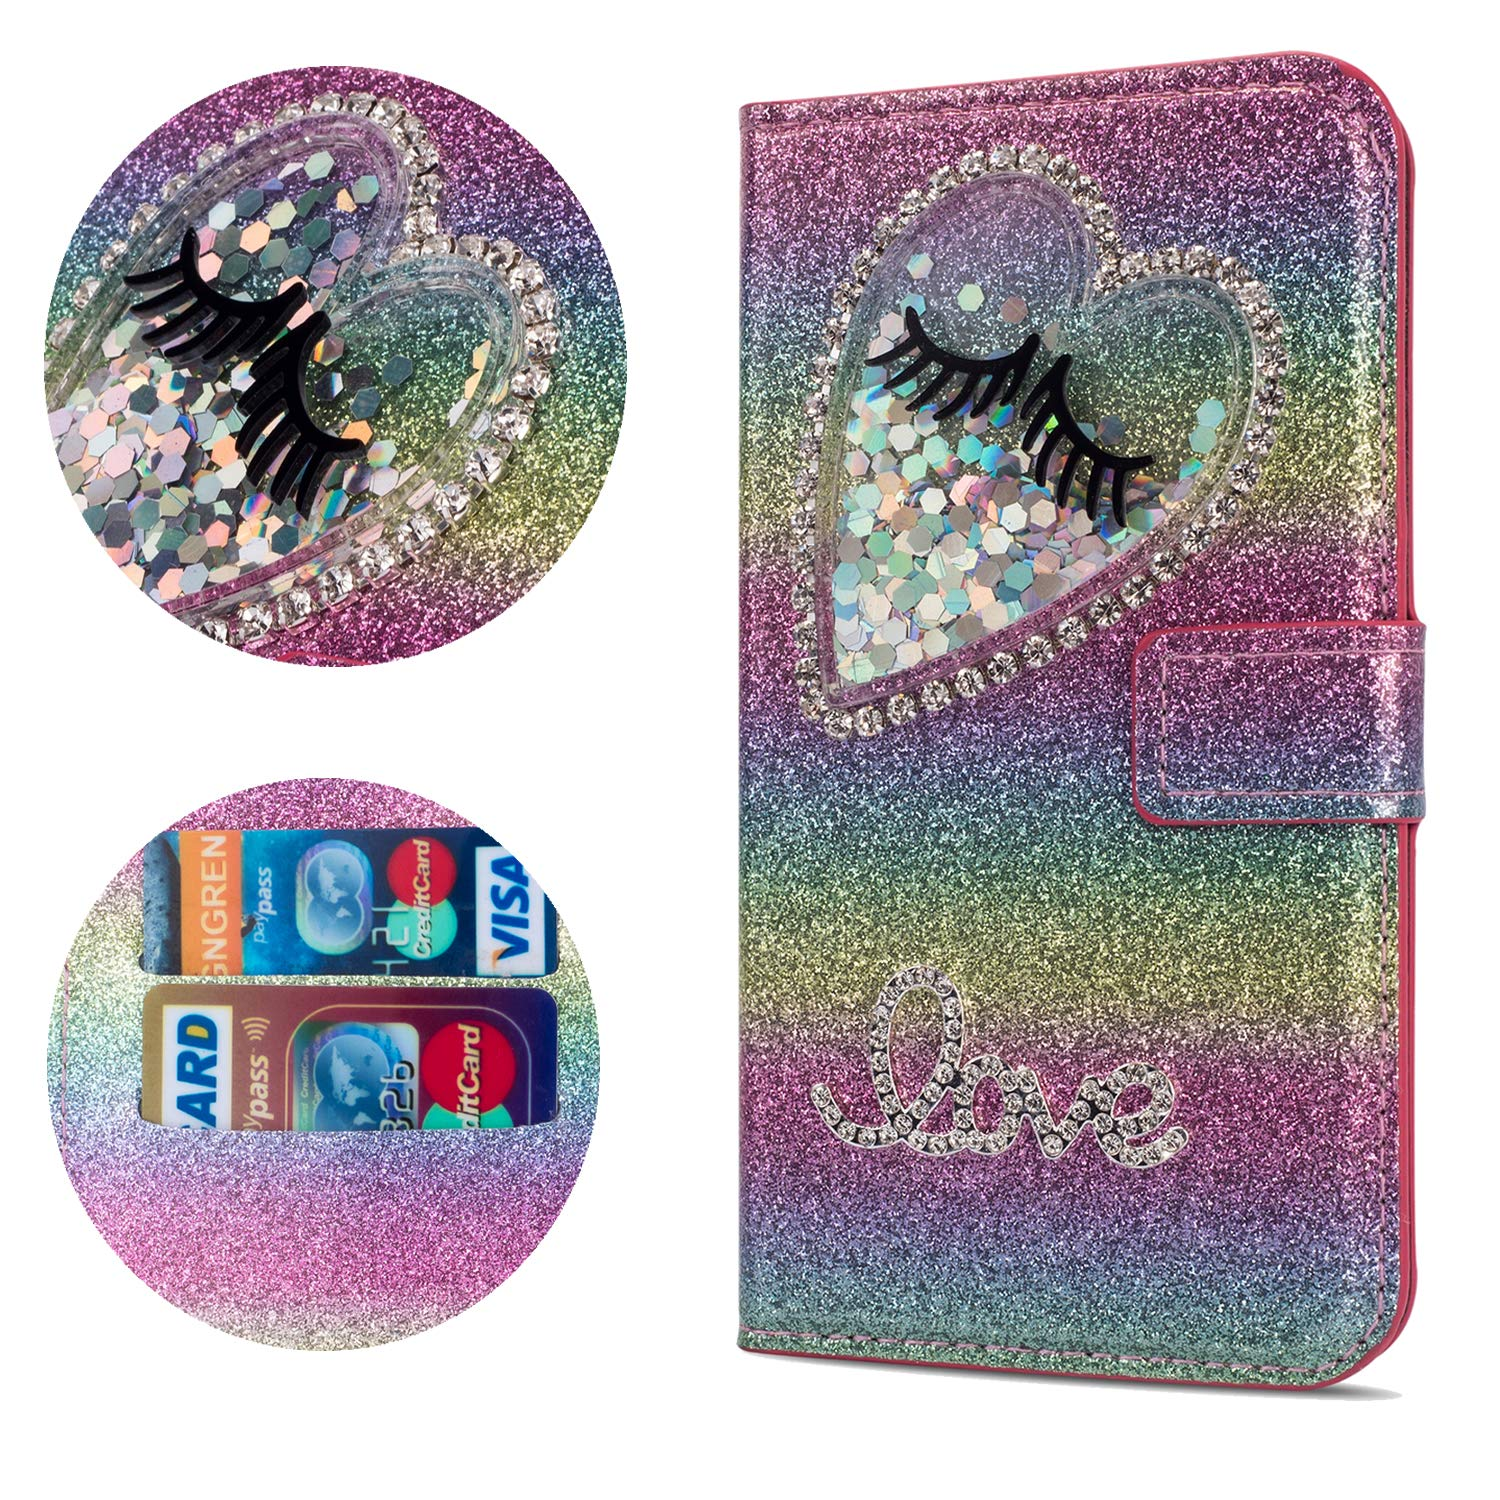 Stysen Flip Case for iPhone Xs Max 6.5'',Leather Cover with 3D Handmade Diamond Heart Sequins Glitter Shiny Wallet Magnetic Clasp for iPhone Xs Max 6.5'' by Stysen